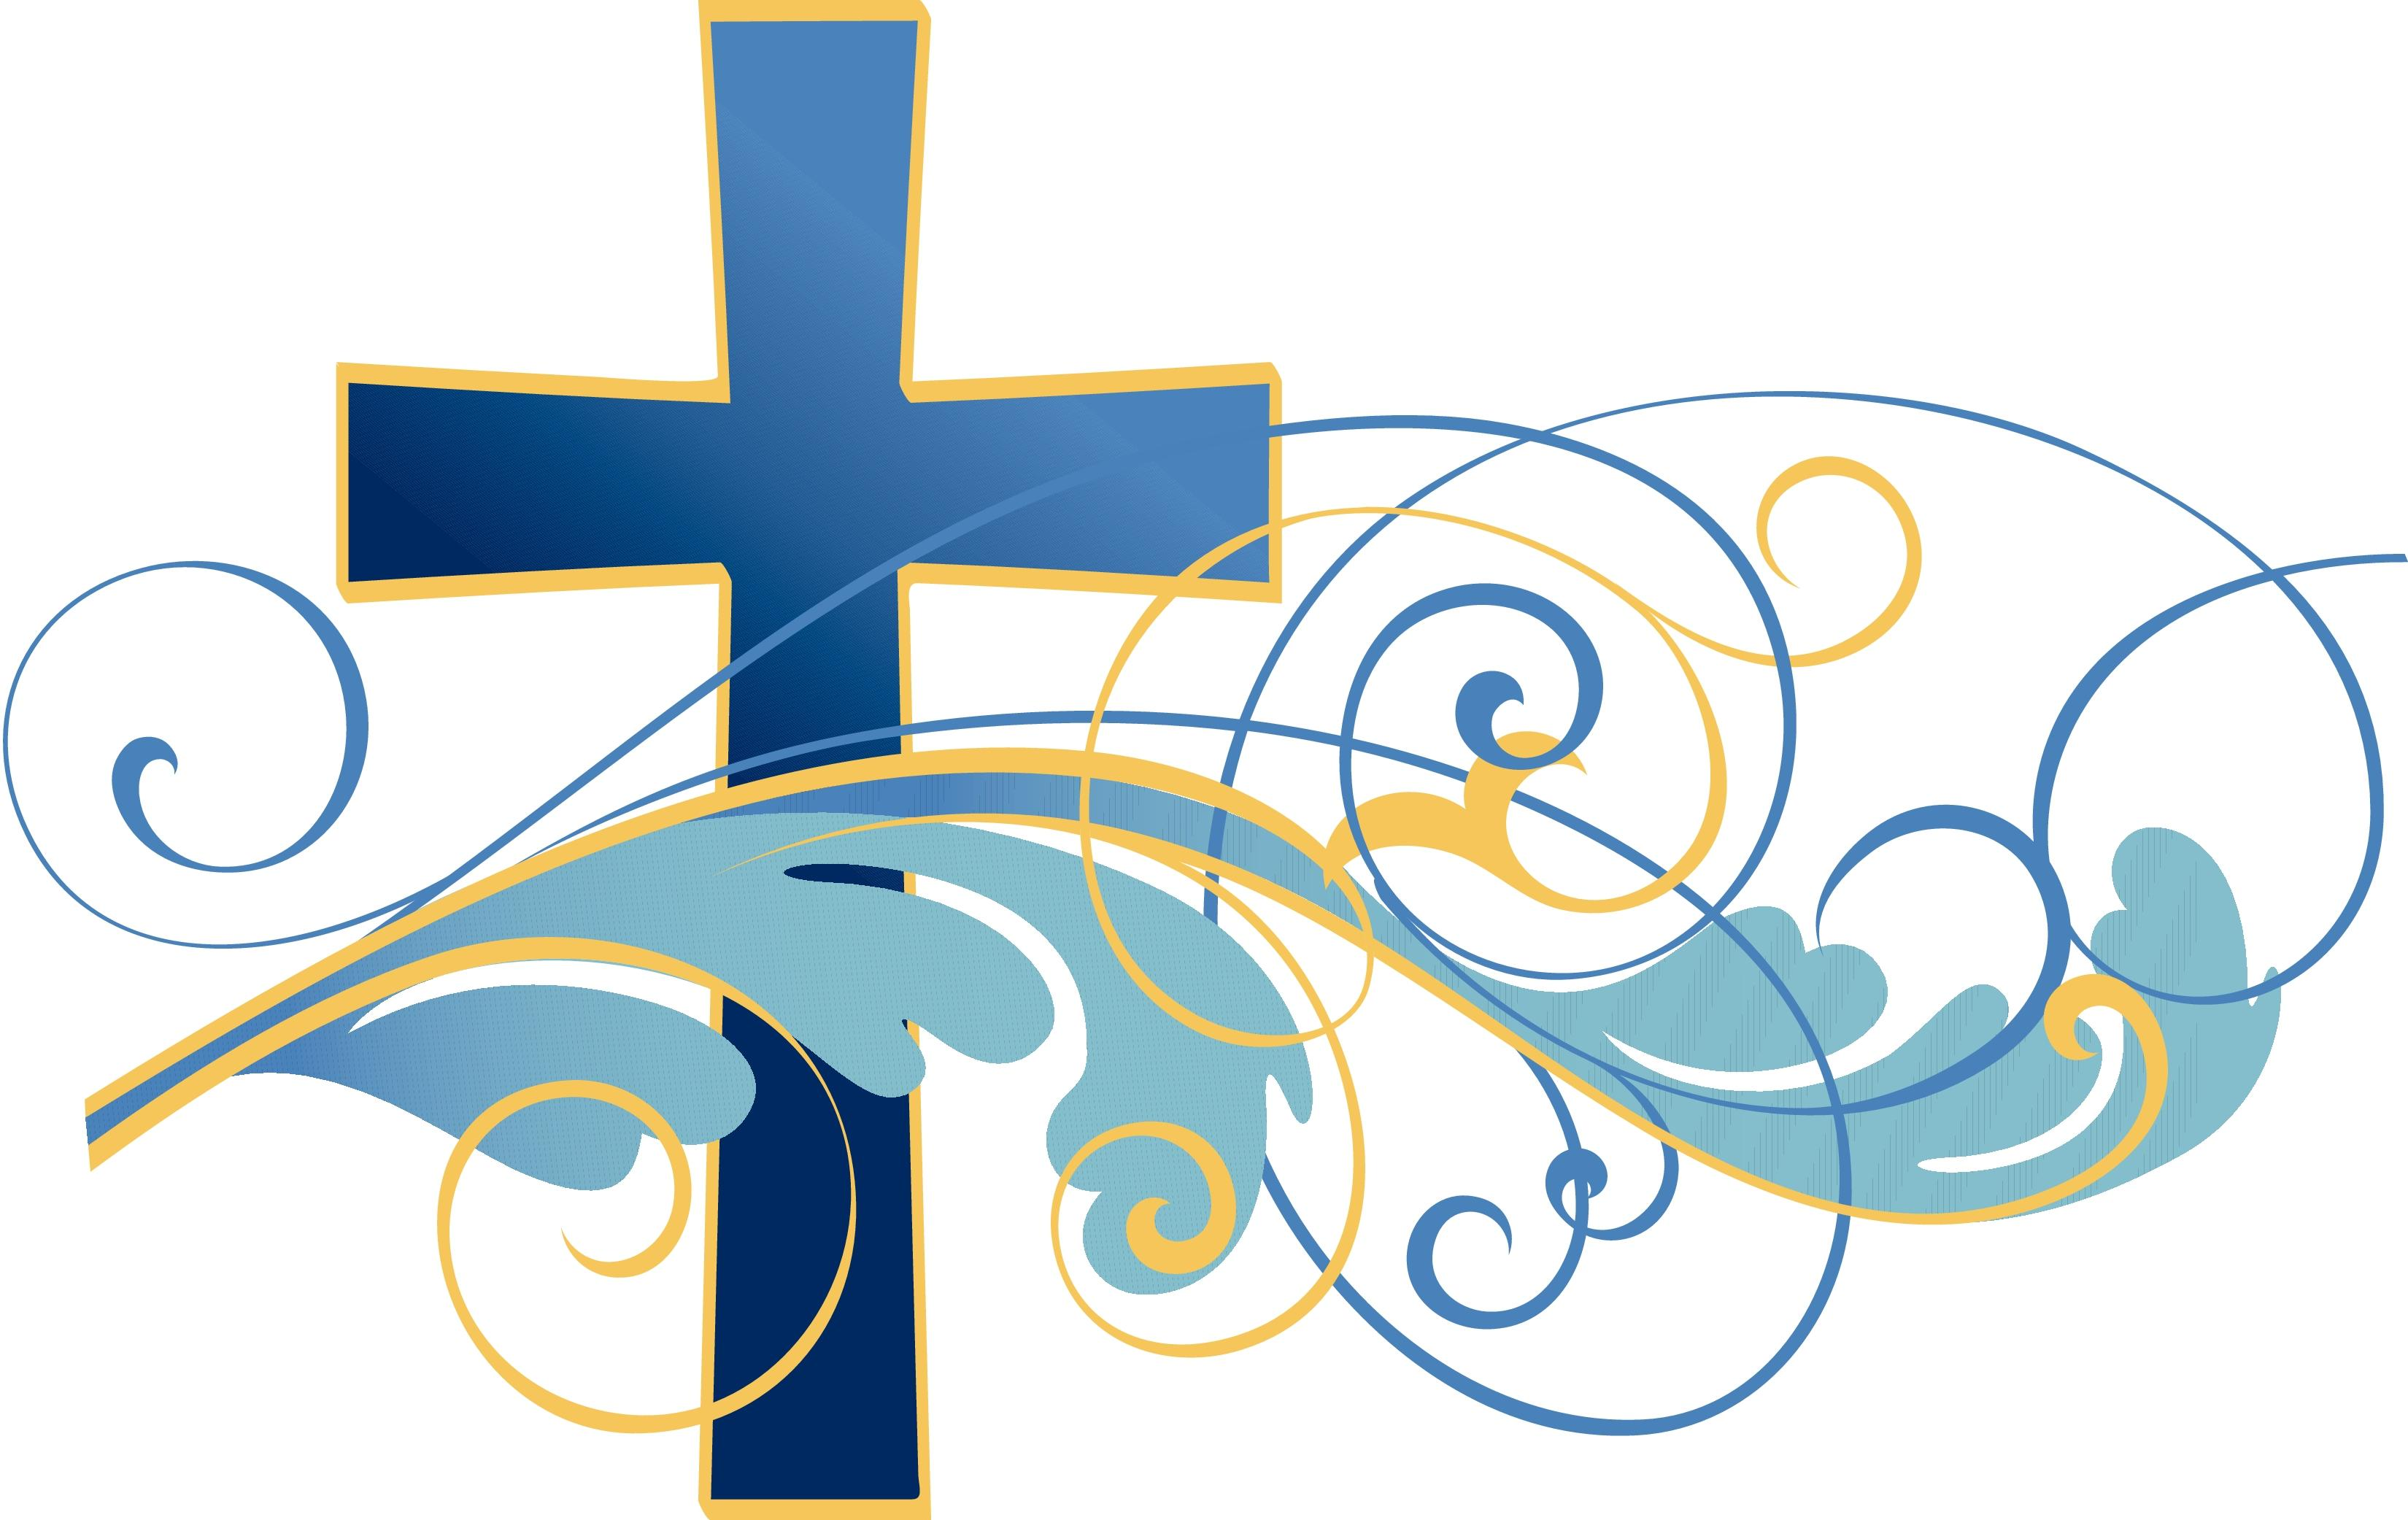 Free images download best. Christian clipart